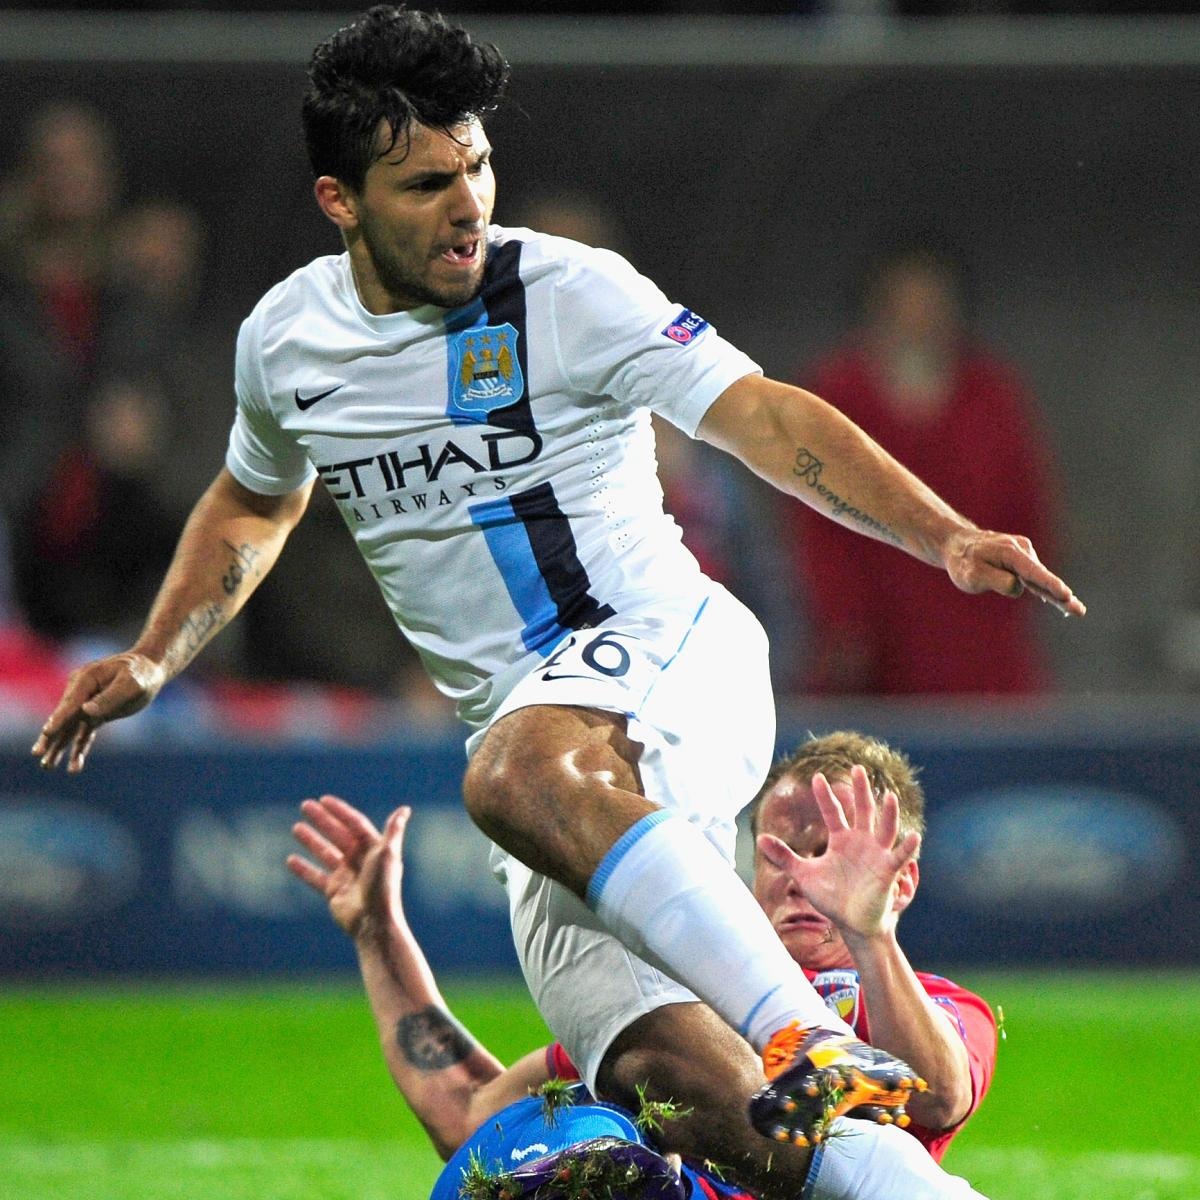 Psg Vs Manchester City Live Score Highlights From: CSKA Moscow Vs. Manchester City: Champions League Live